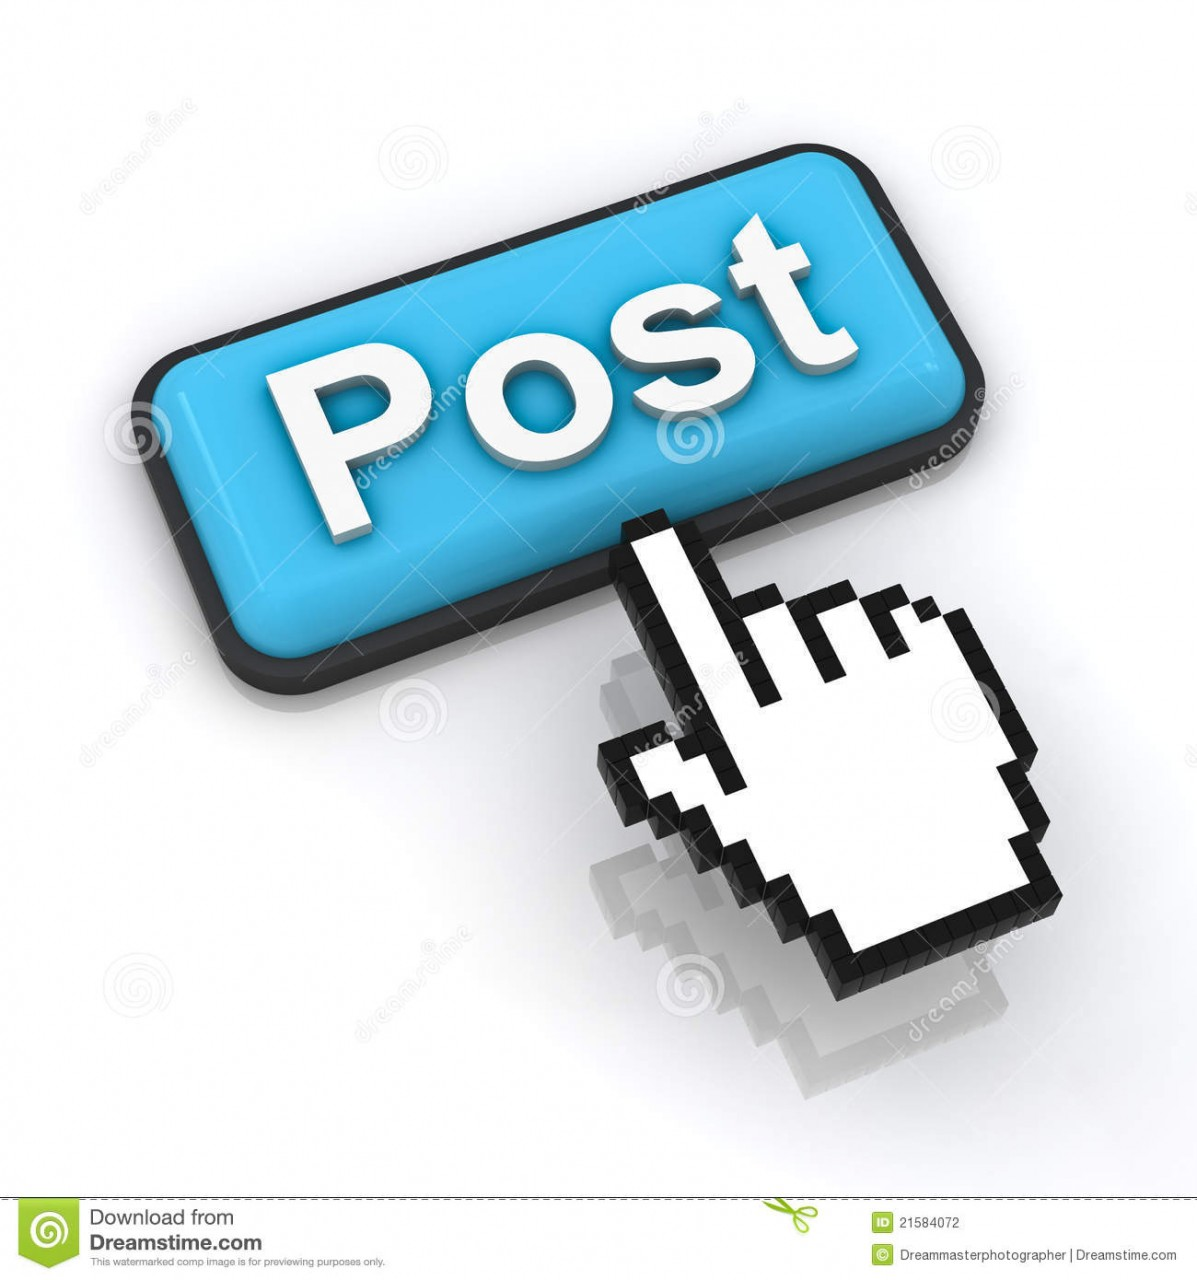 post-button-hand-cursor-21584072